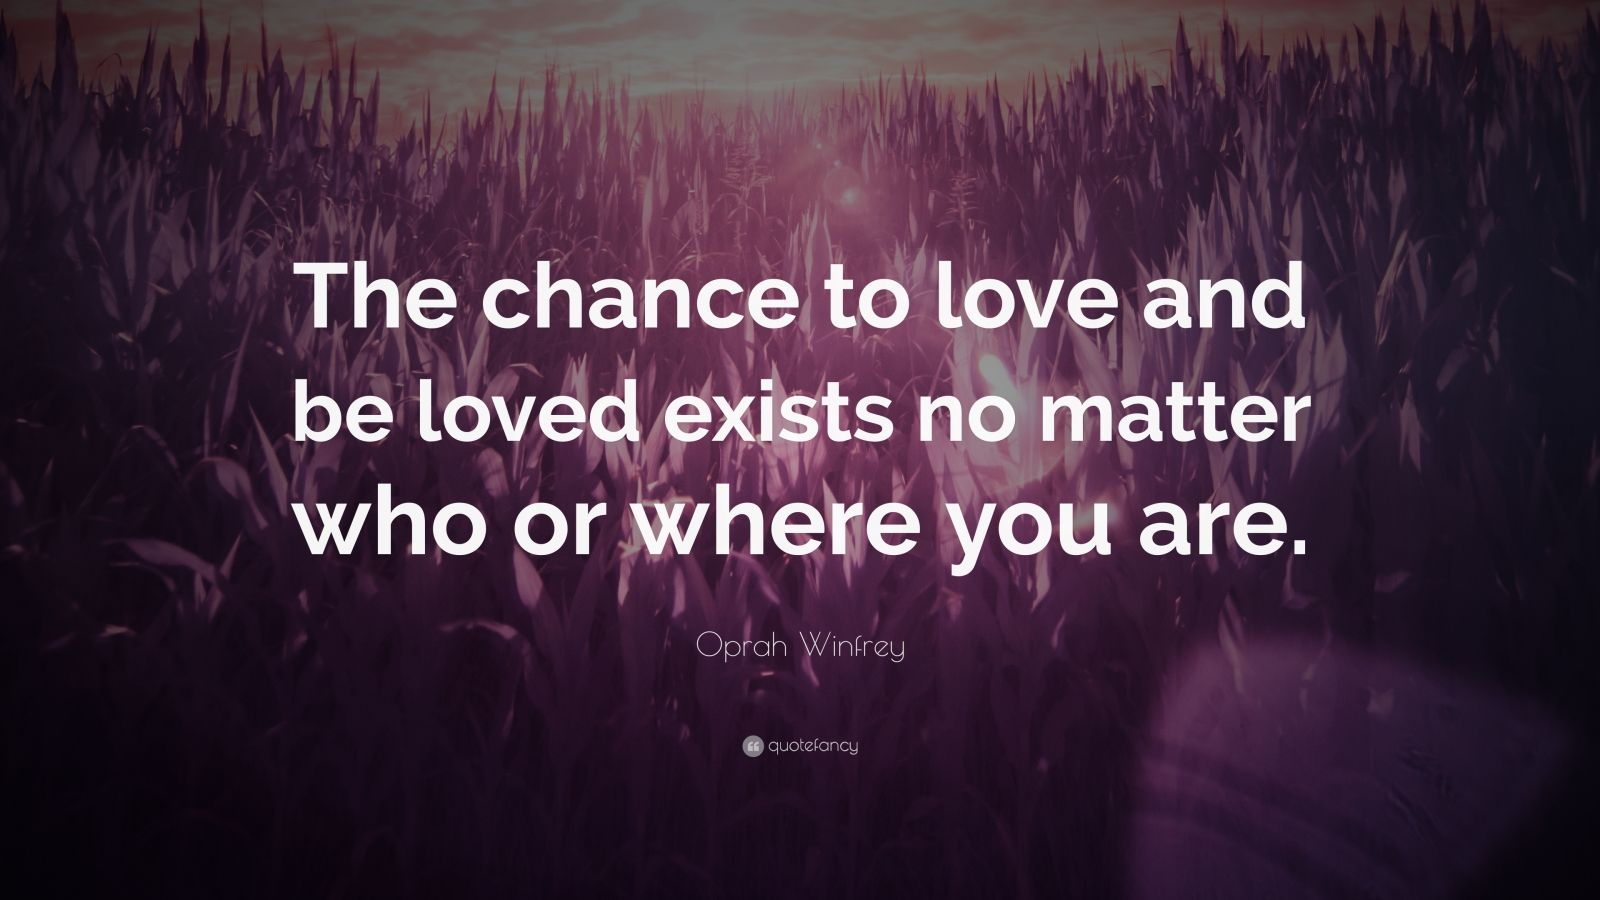 """Oprah Winfrey Quote: """"The chance to love and be loved exists no matter who or where you are."""""""